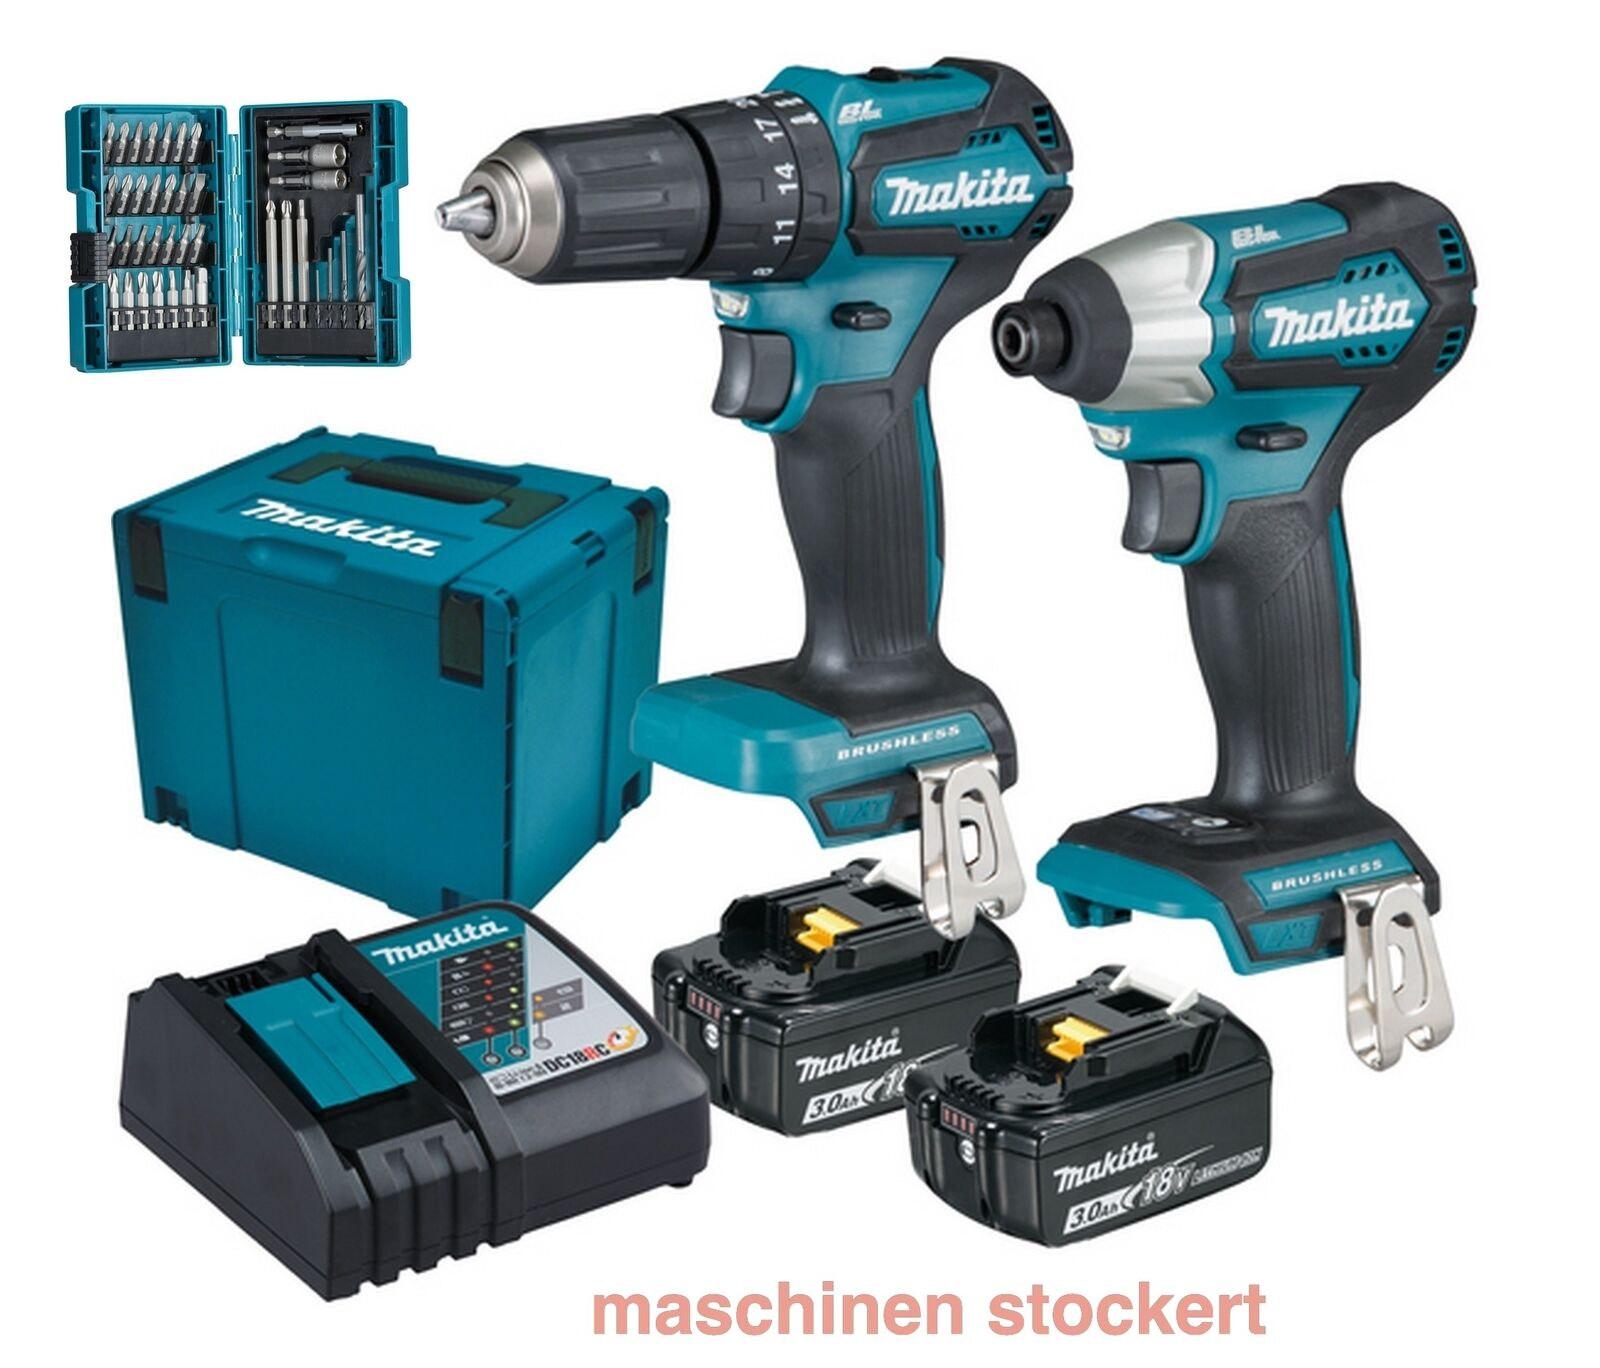 makita dlx2221jx2 akku schlagbohrschrauber dhp483 dtd155 im set 18v eur 297 99 picclick it. Black Bedroom Furniture Sets. Home Design Ideas